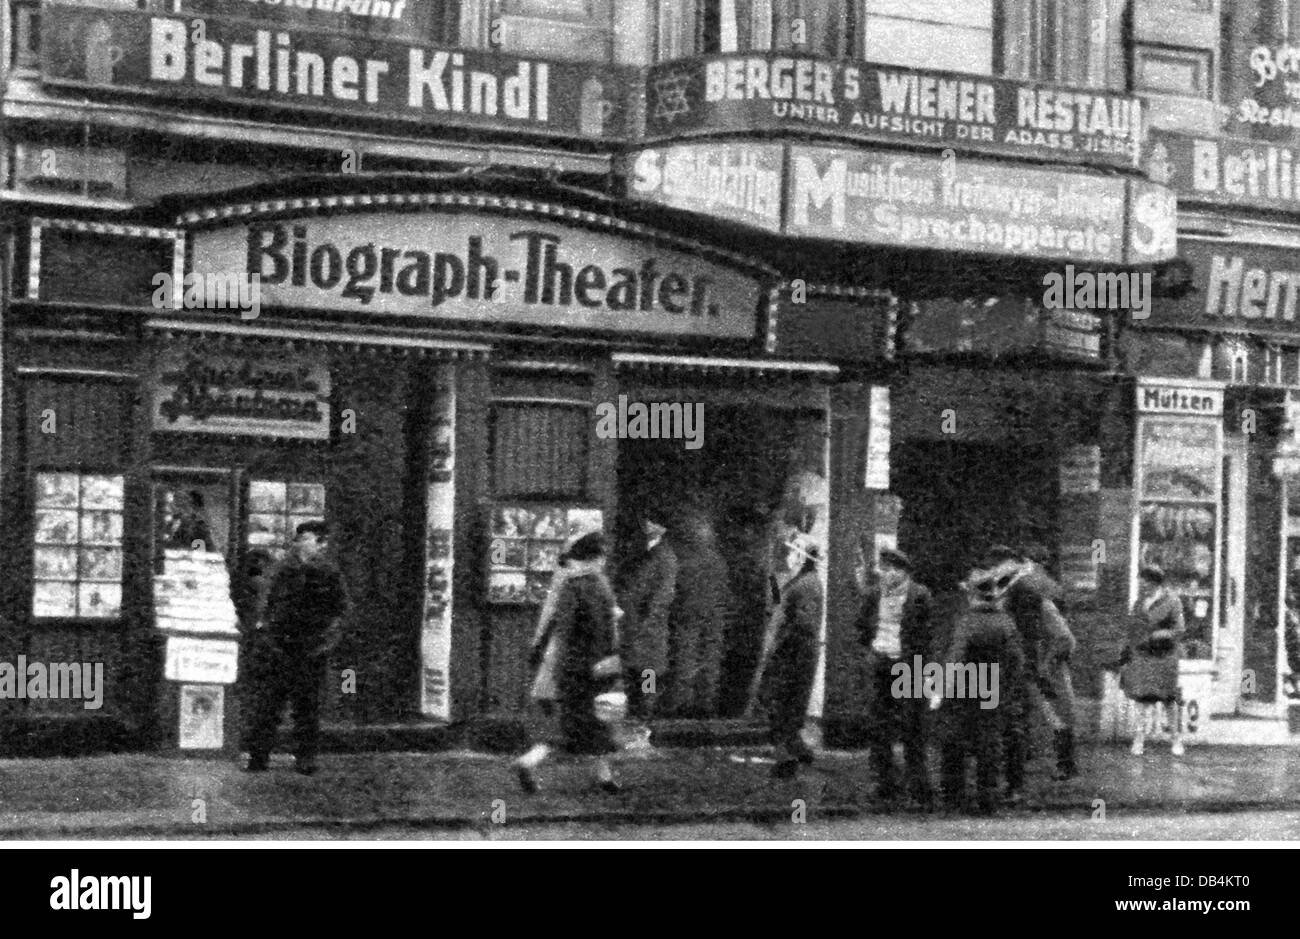 cinema, 'Biograph-Theater', Münzstrasse, Berlin 1929, Additional-Rights-Clearences-NA - Stock Image